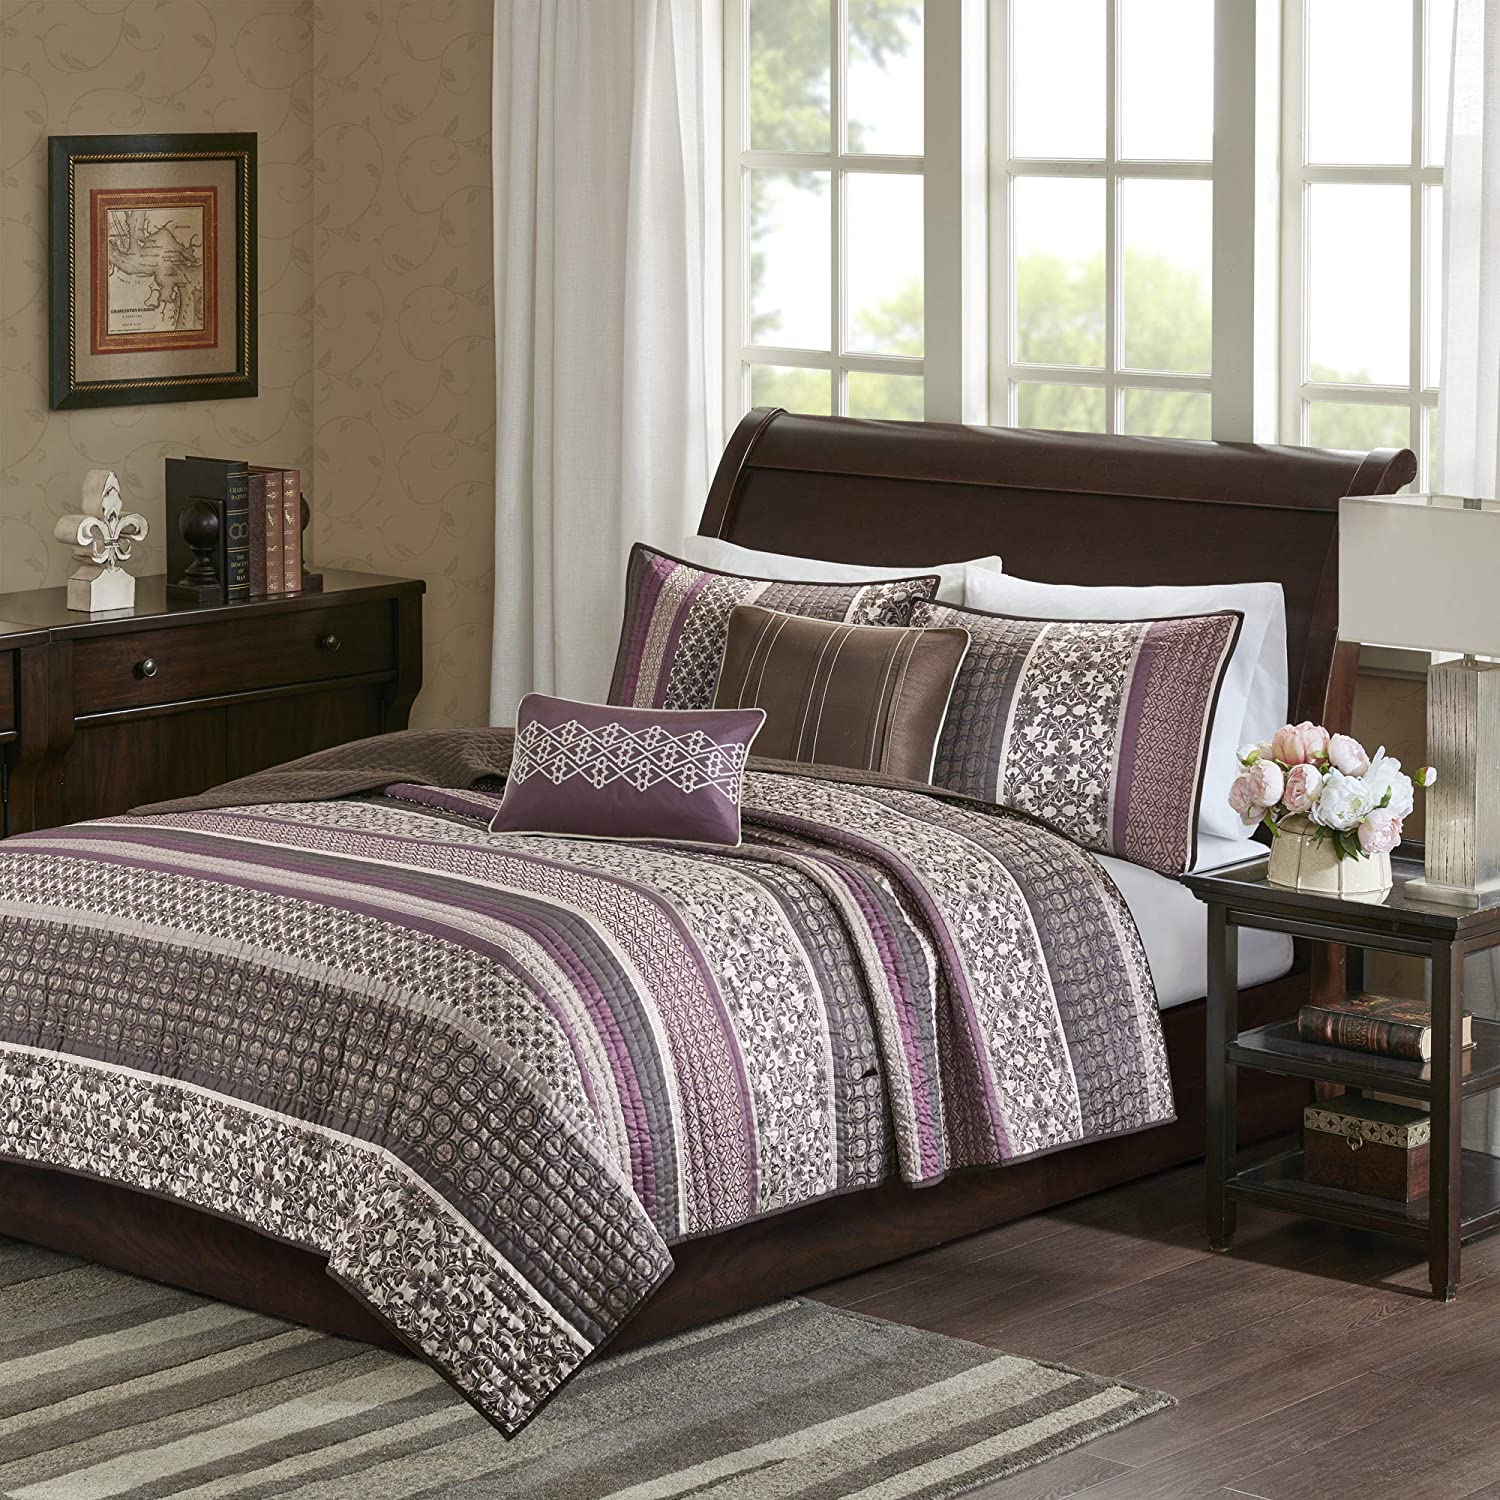 Madison Park Princeton Reversible Jacquard Woven Flower Floral Botanical Medallion Stripes Texture Down Alternative All Season Coverlet Quilts Bedding-Set, Full/Queen, Purple/Brown